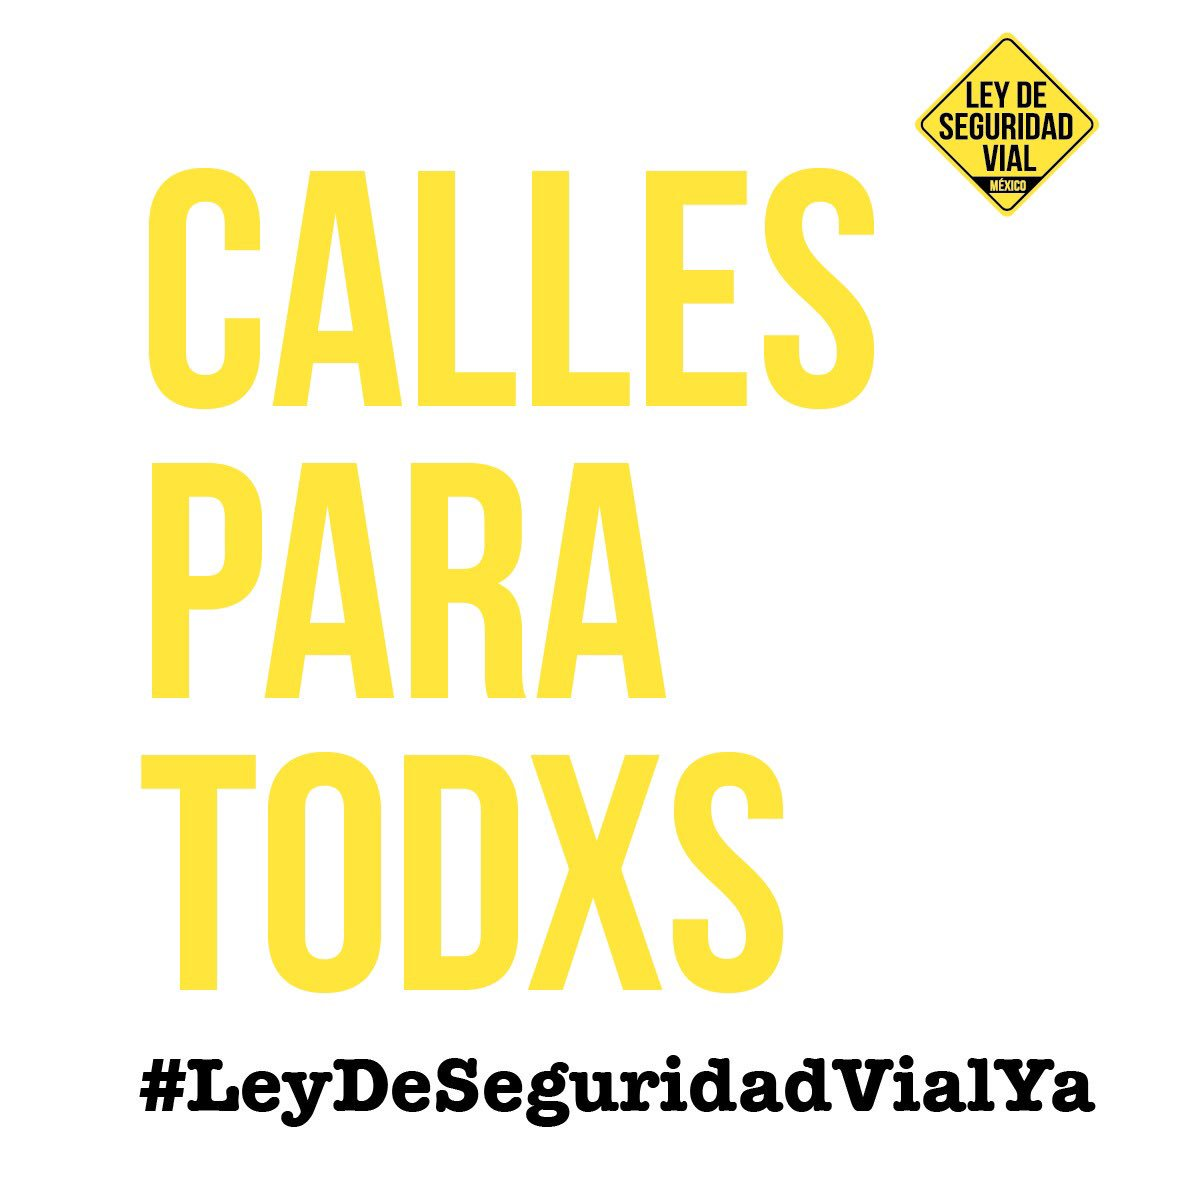 Bicitekas's photo on #LeyDeSeguridadVial